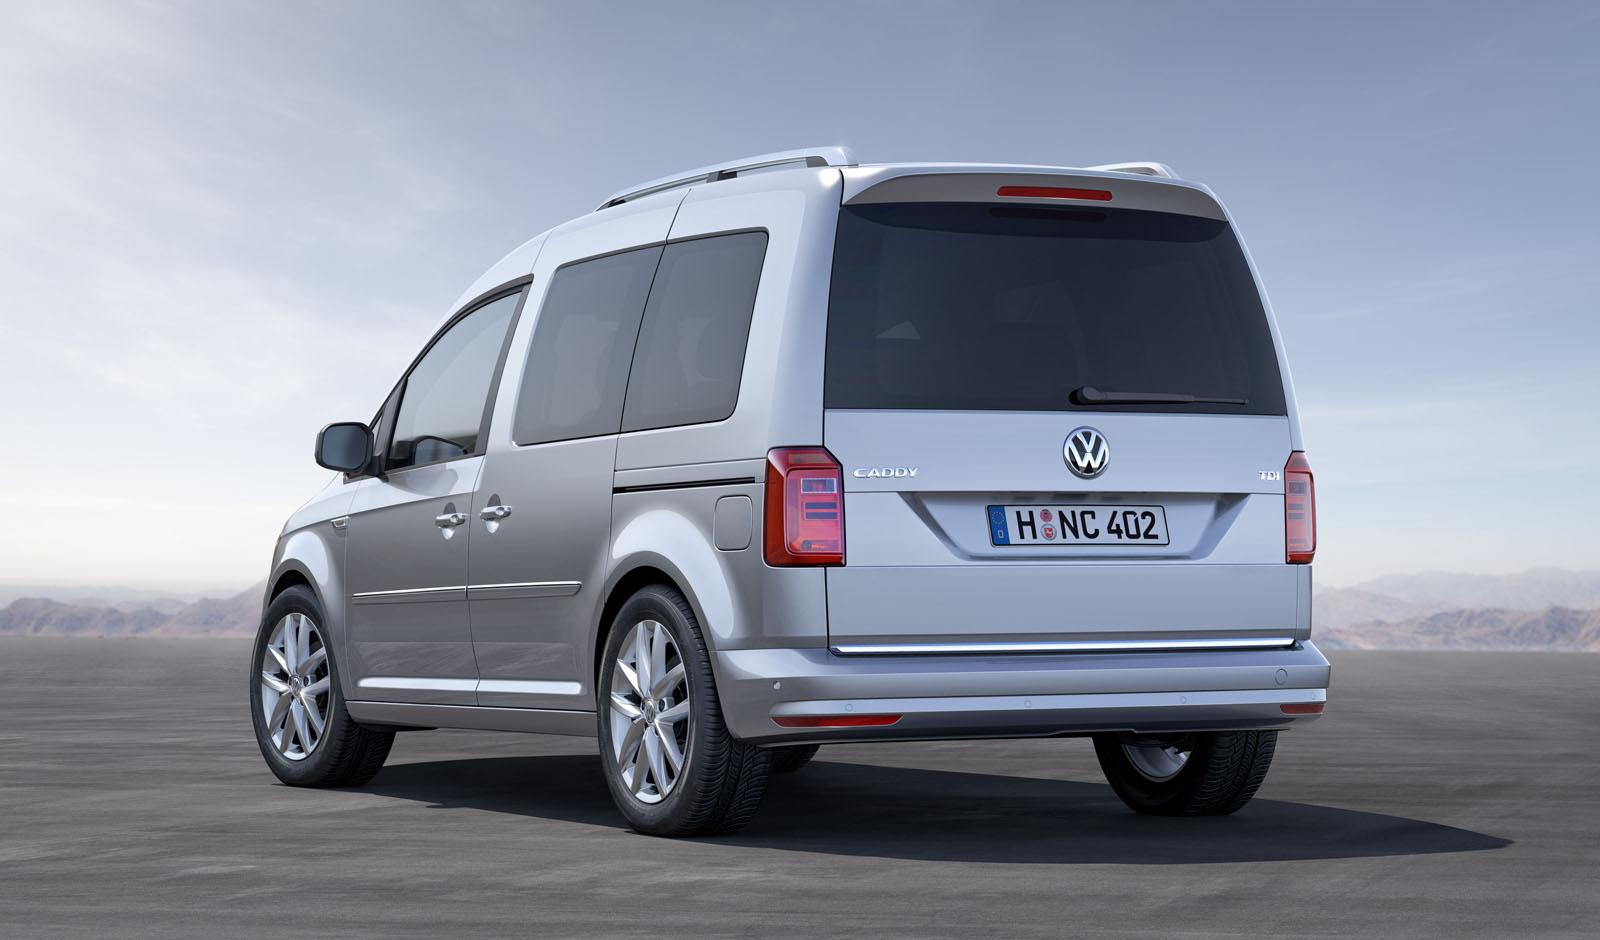 2015 Volkswagen Caddy Unveiled with New 1.0 TSI 3-Cylinder Turbo Engine - autoevolution